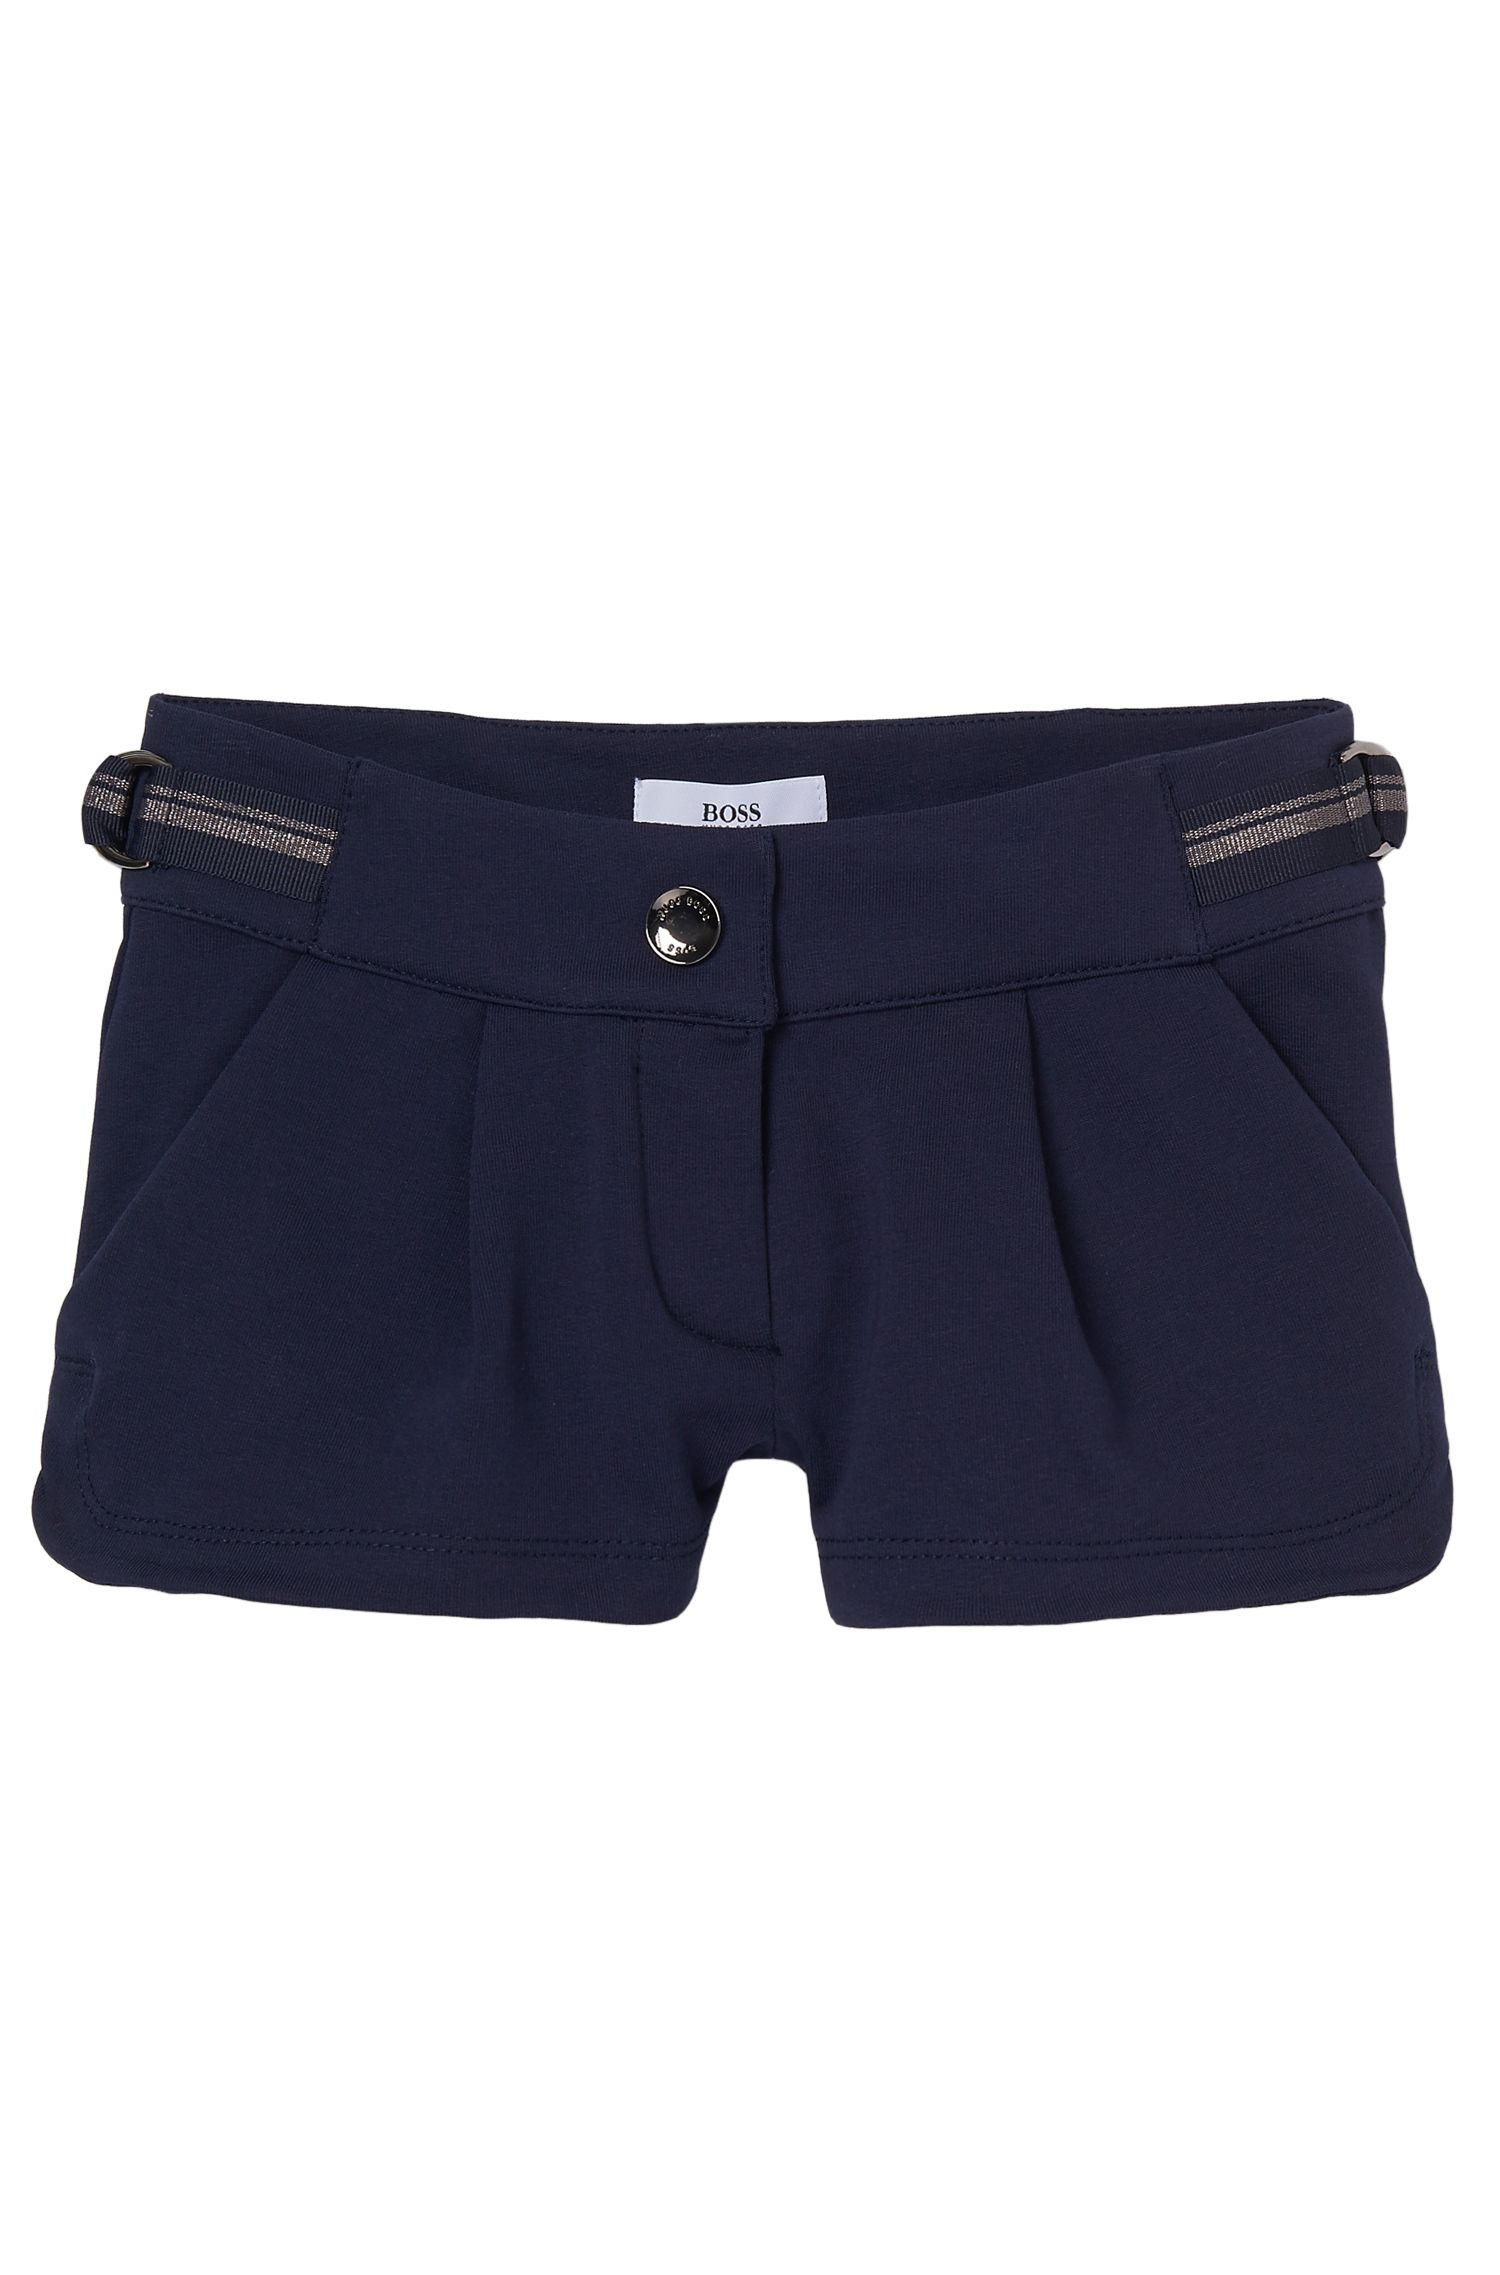 'J14173' | Girls Cotton Fleece Shorts